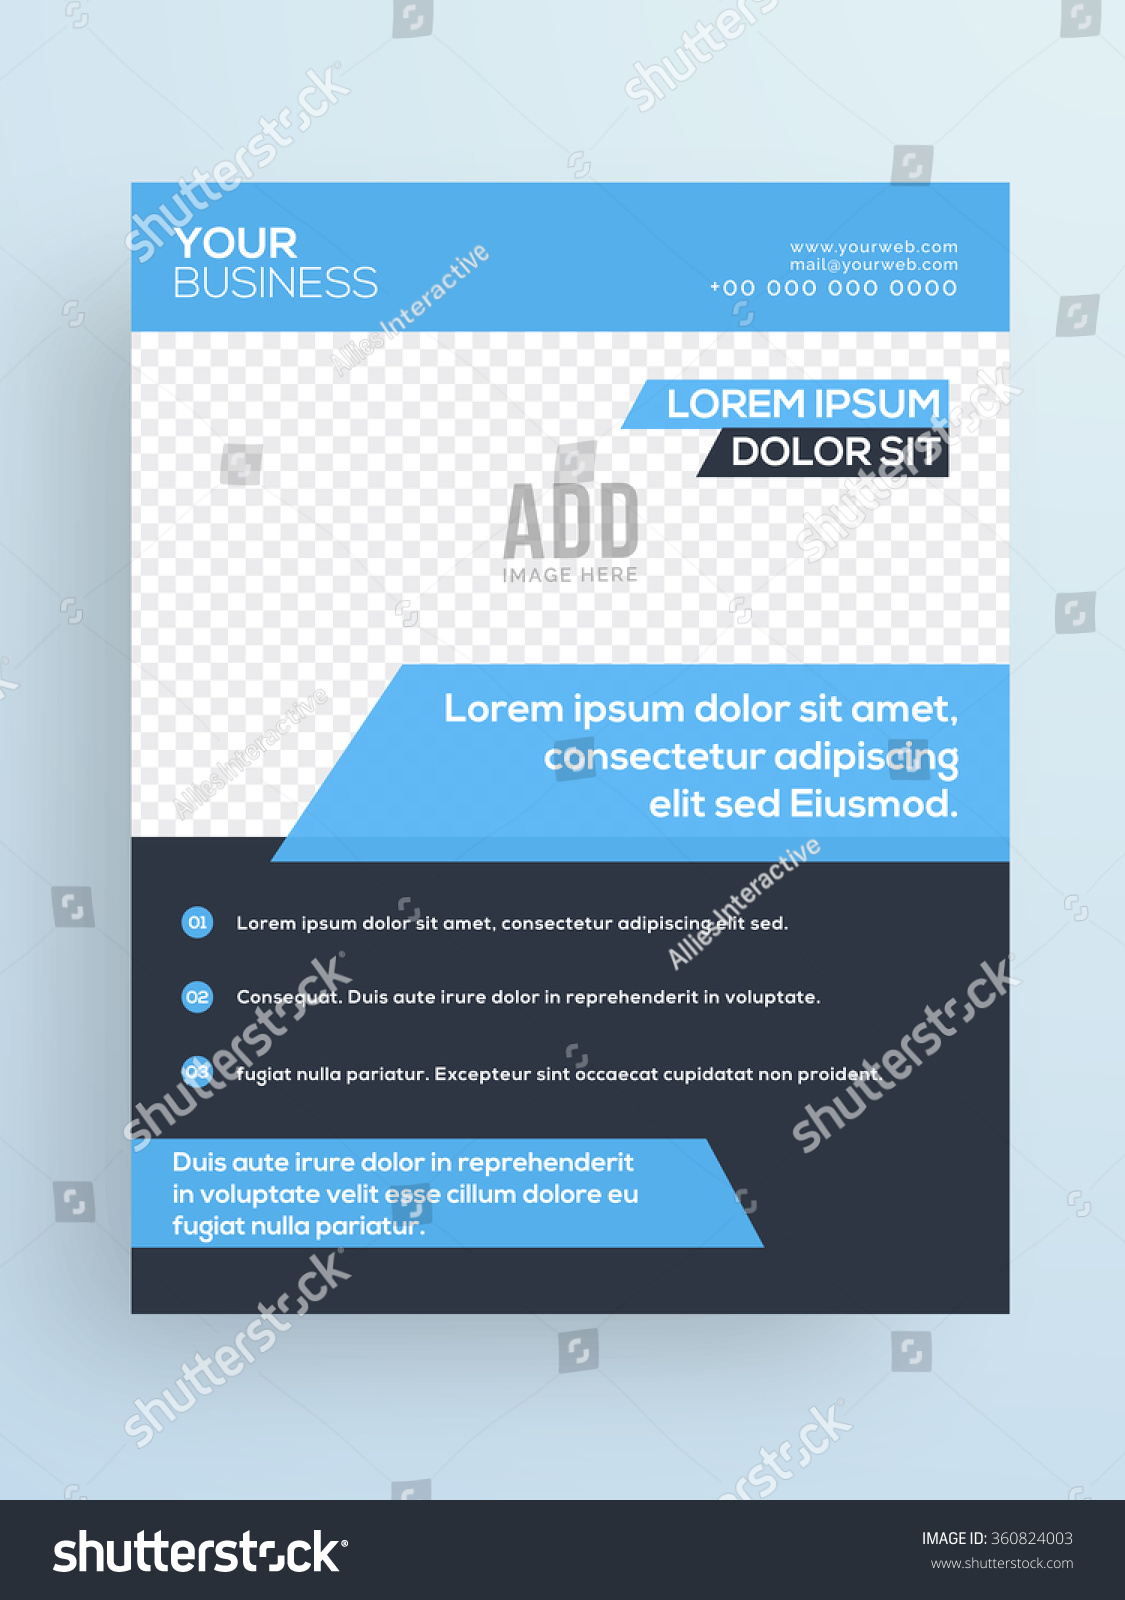 Professional One Page Business Flyer Banner Stock Vector 360824003 ...